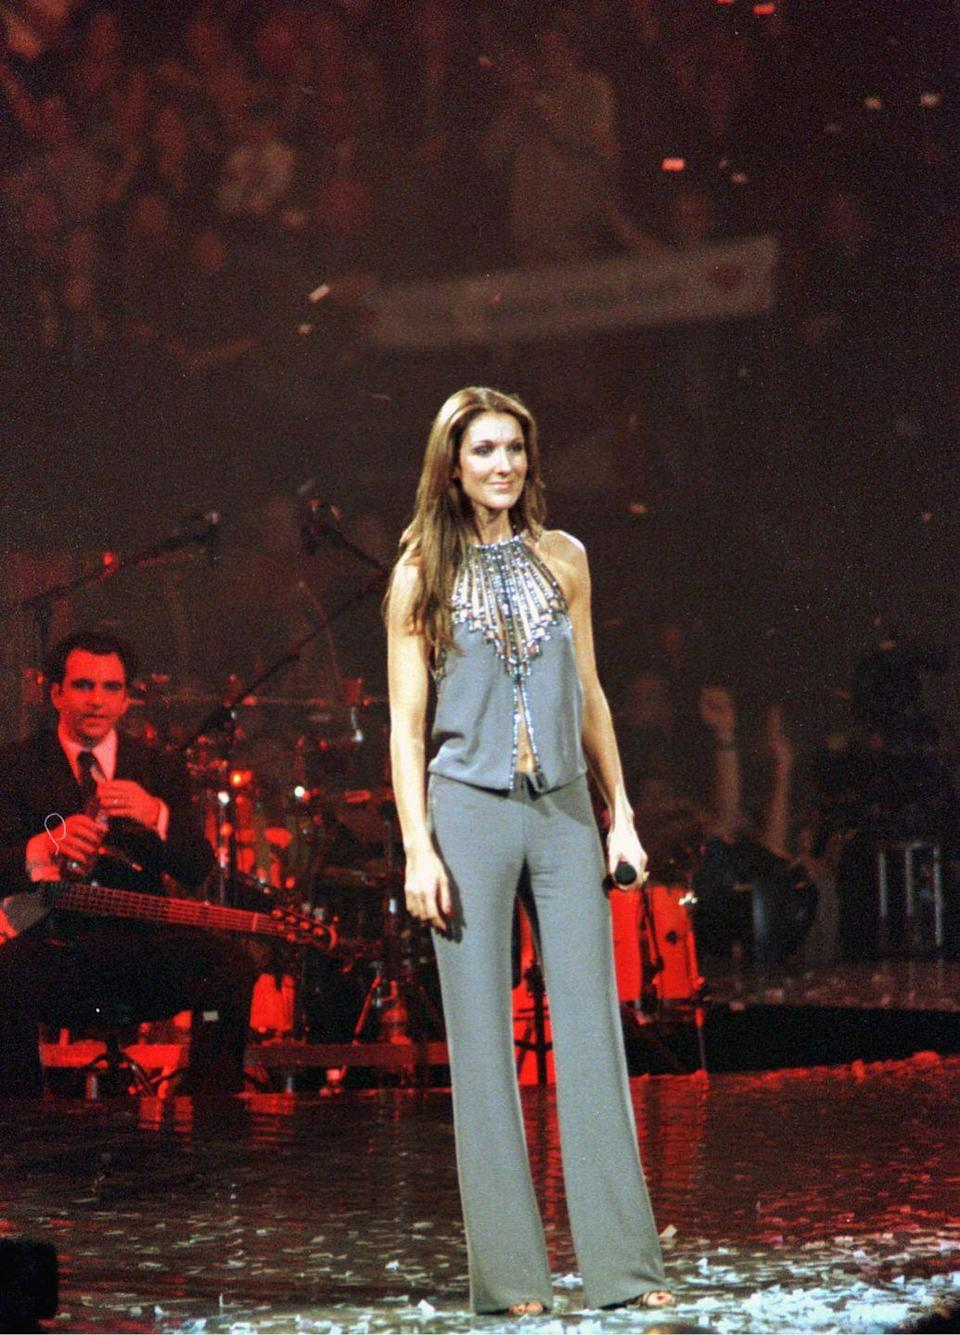 <p>For a concert in Montreal, Canada, Celine wore a flattering grey-blue matching set. The trousers are all business, whereas the belly-baring top is adorned with gems and beads to relax the look.</p>